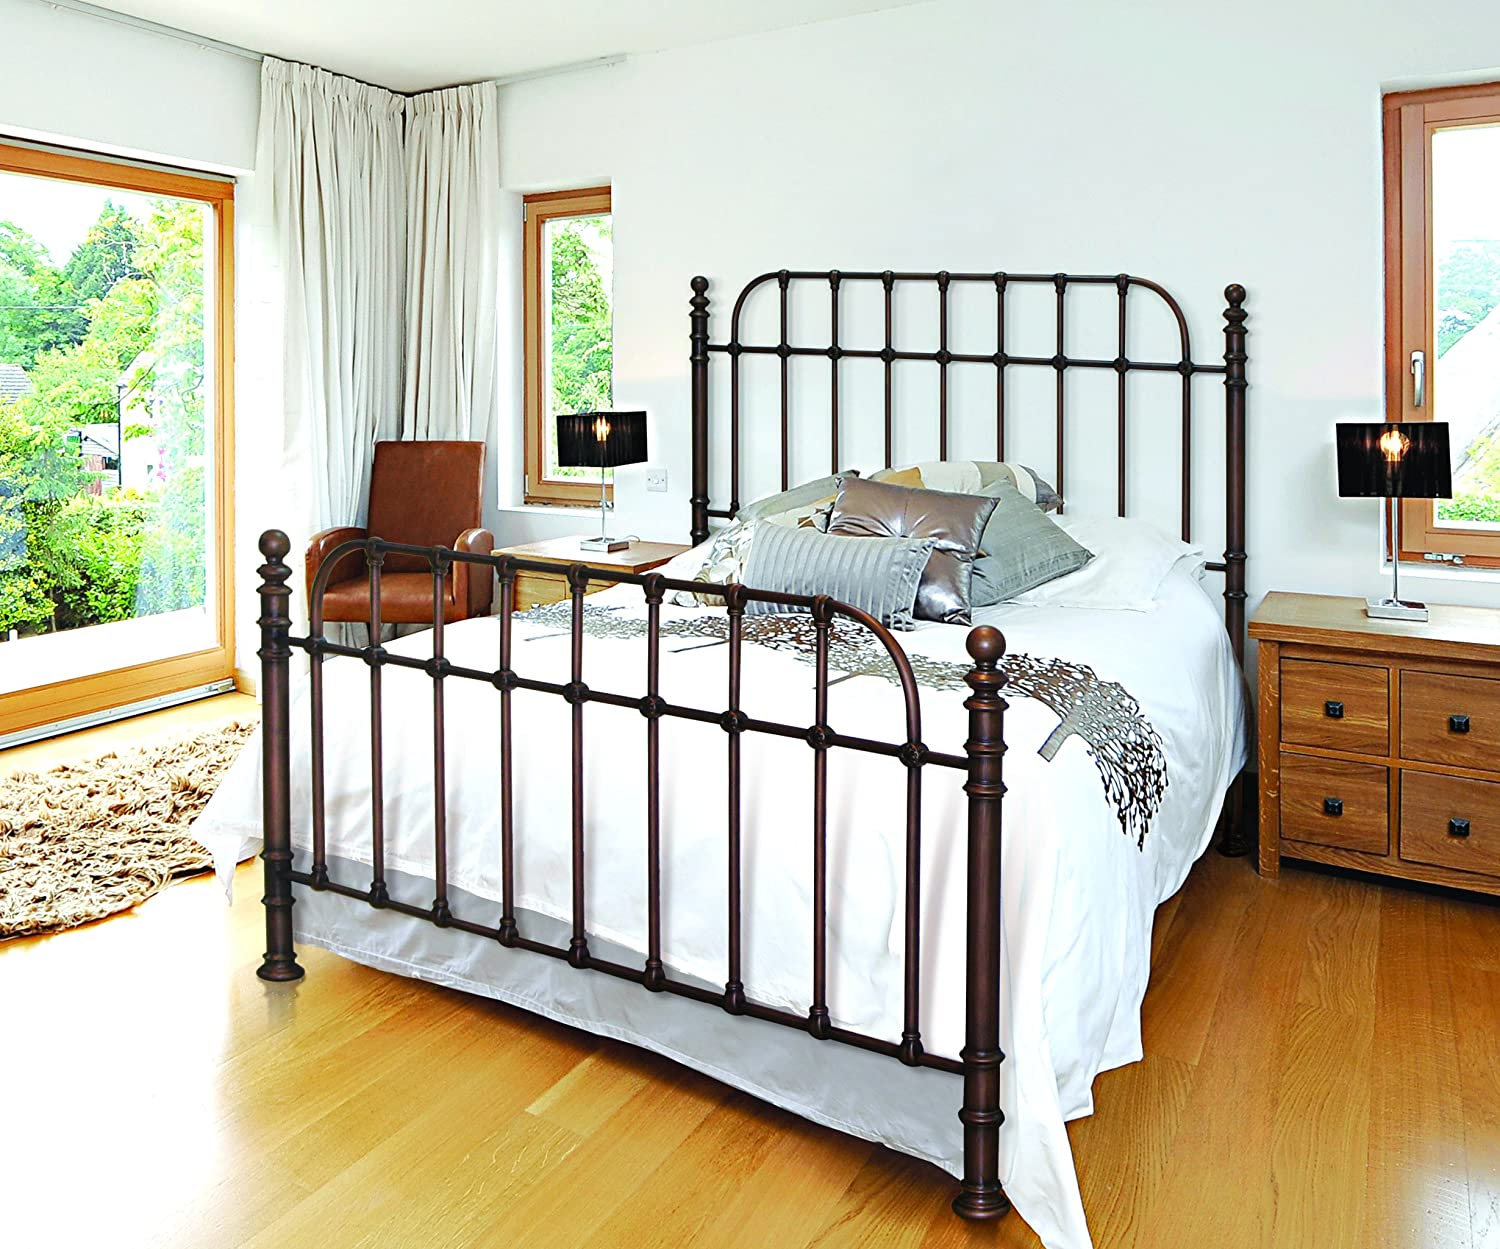 Amazon.com: Bell\'O B565QDC Metal Bed Frame Queen, Dark Copper ...